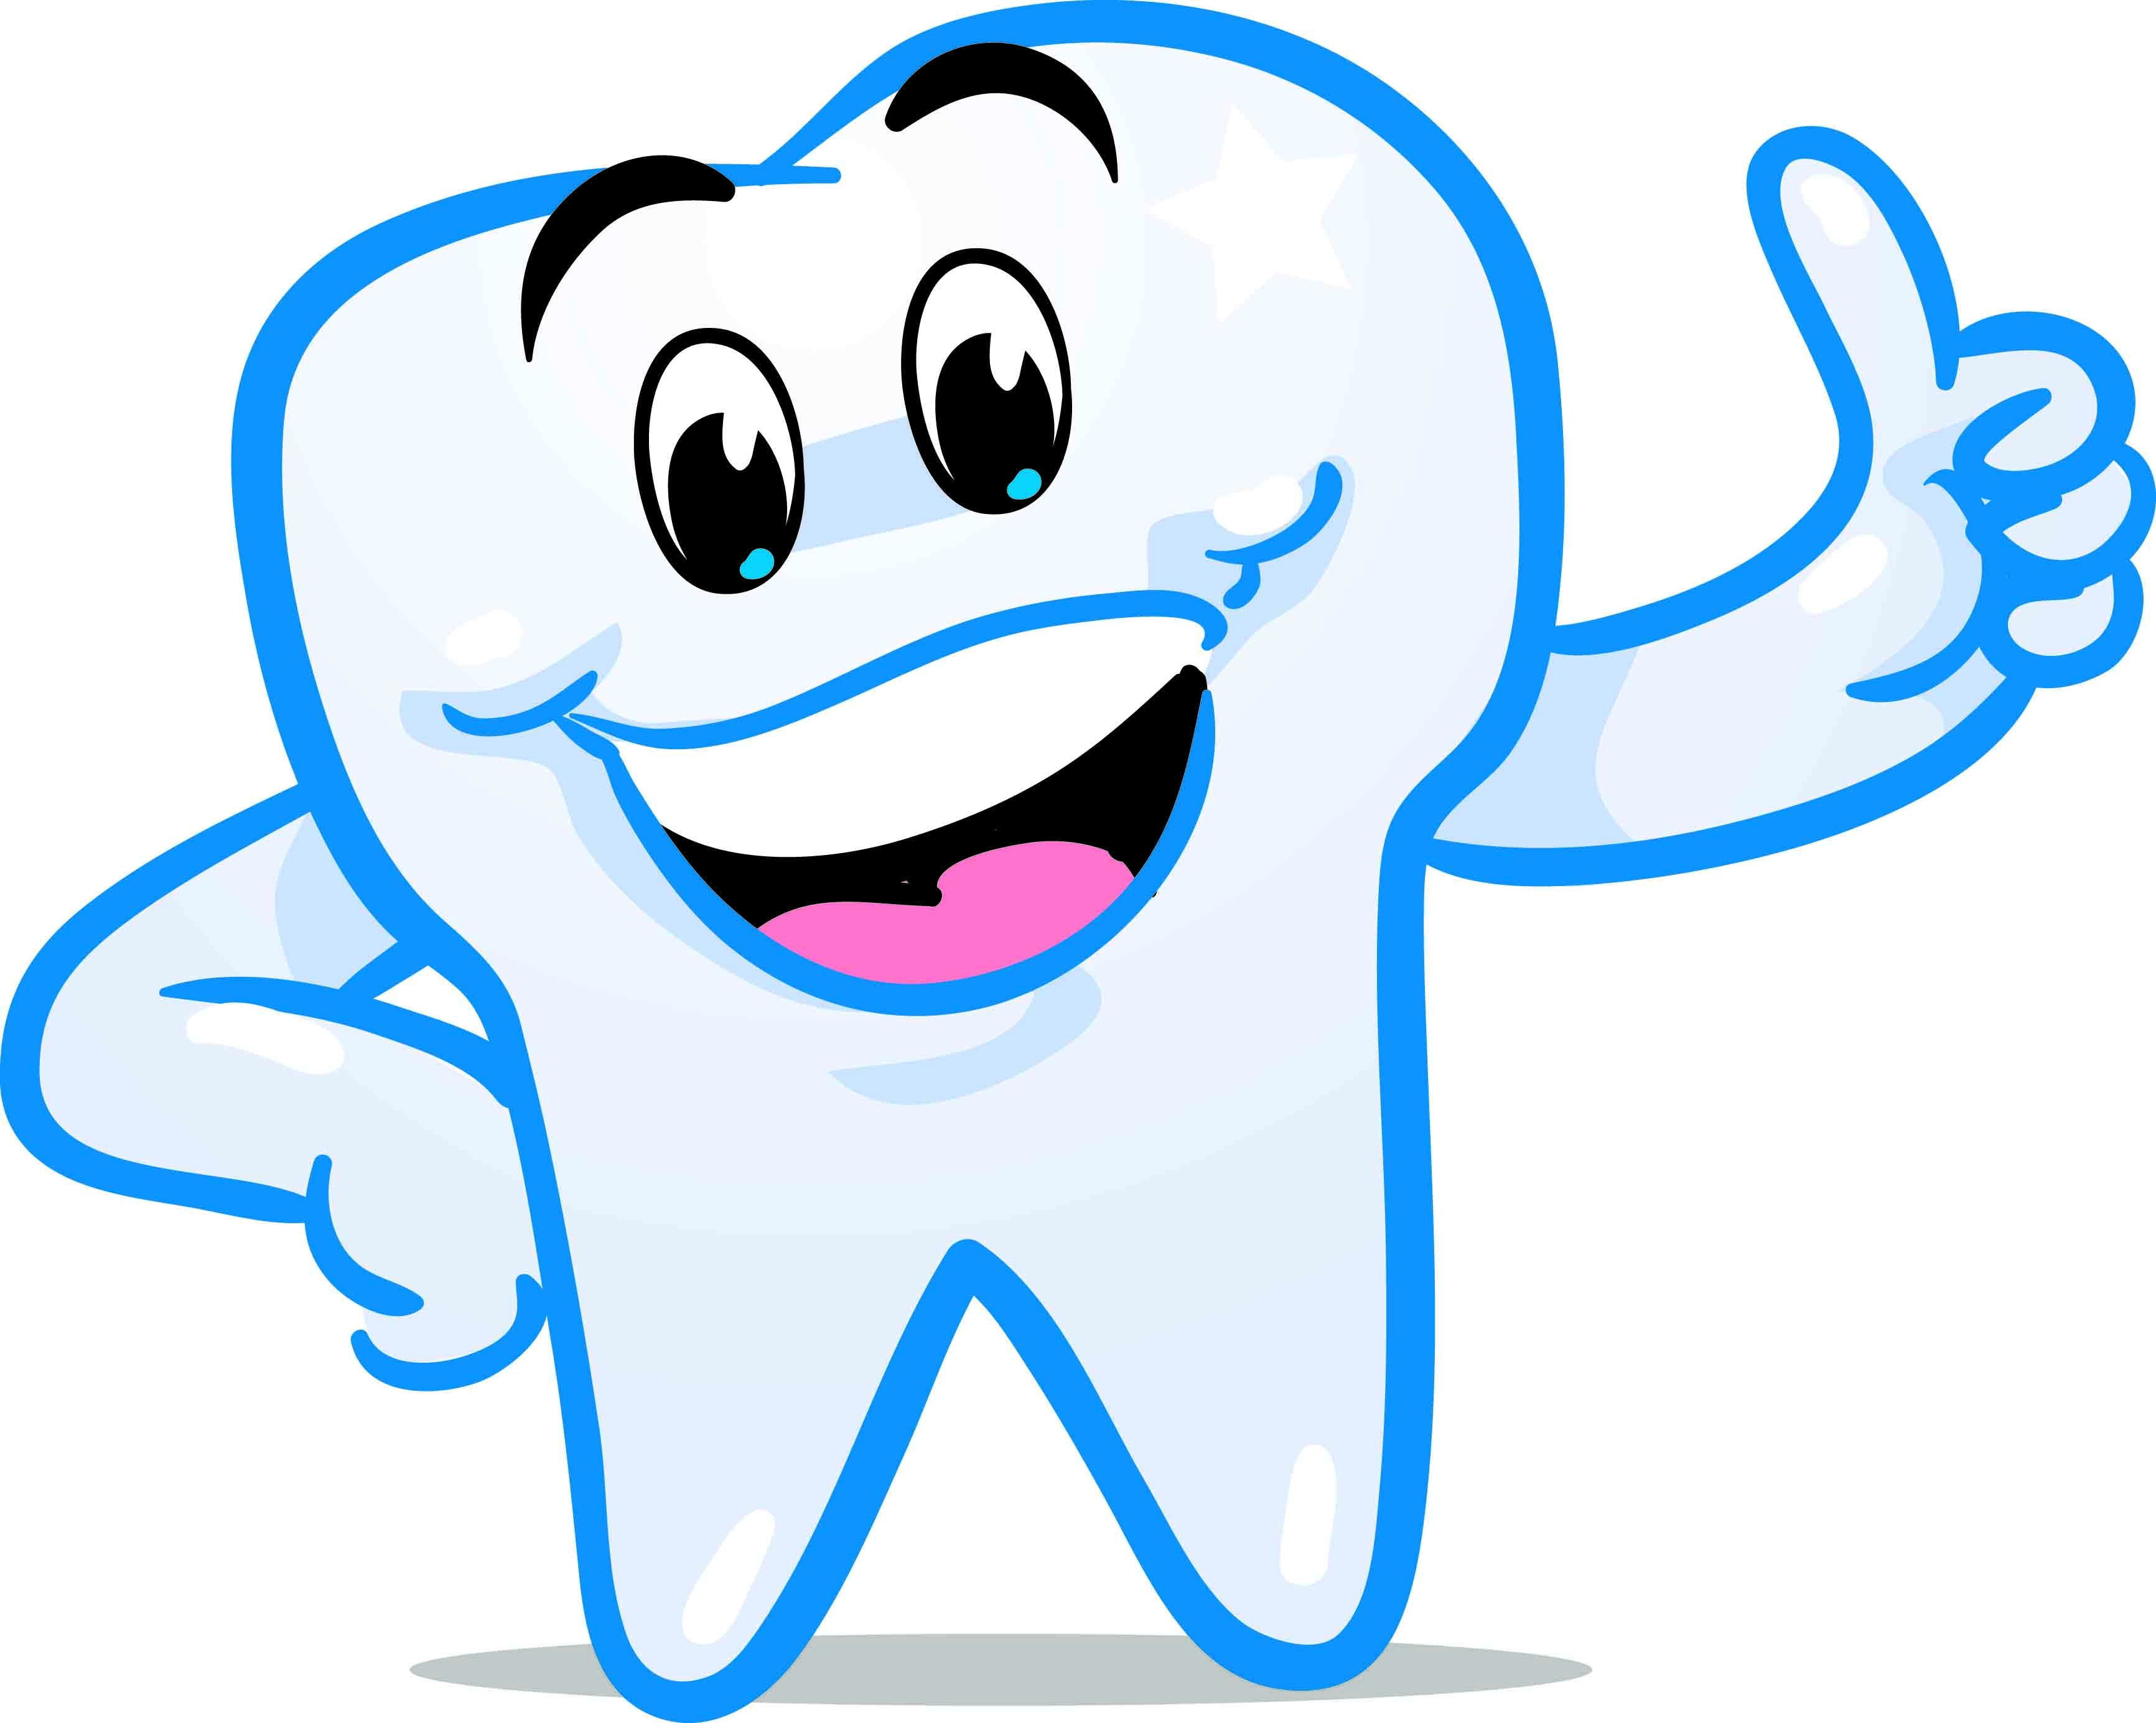 personal hygiene clipart at getdrawings com free for personal use rh getdrawings com dental clipart images dental hygienist clipart free